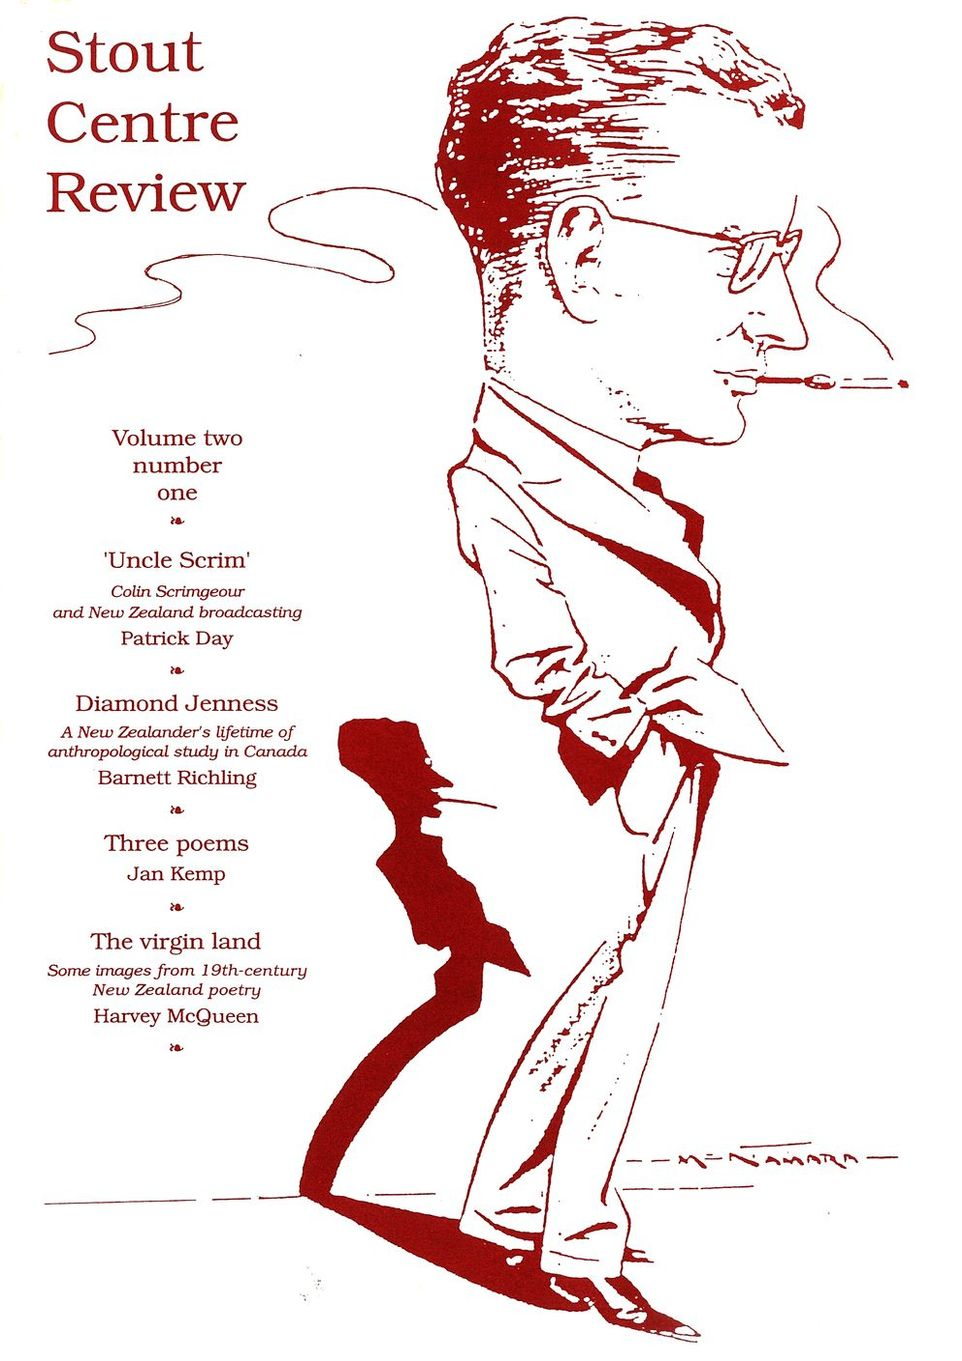 Cover of Stout Centre Review, 1991, V. 2, N. 1.